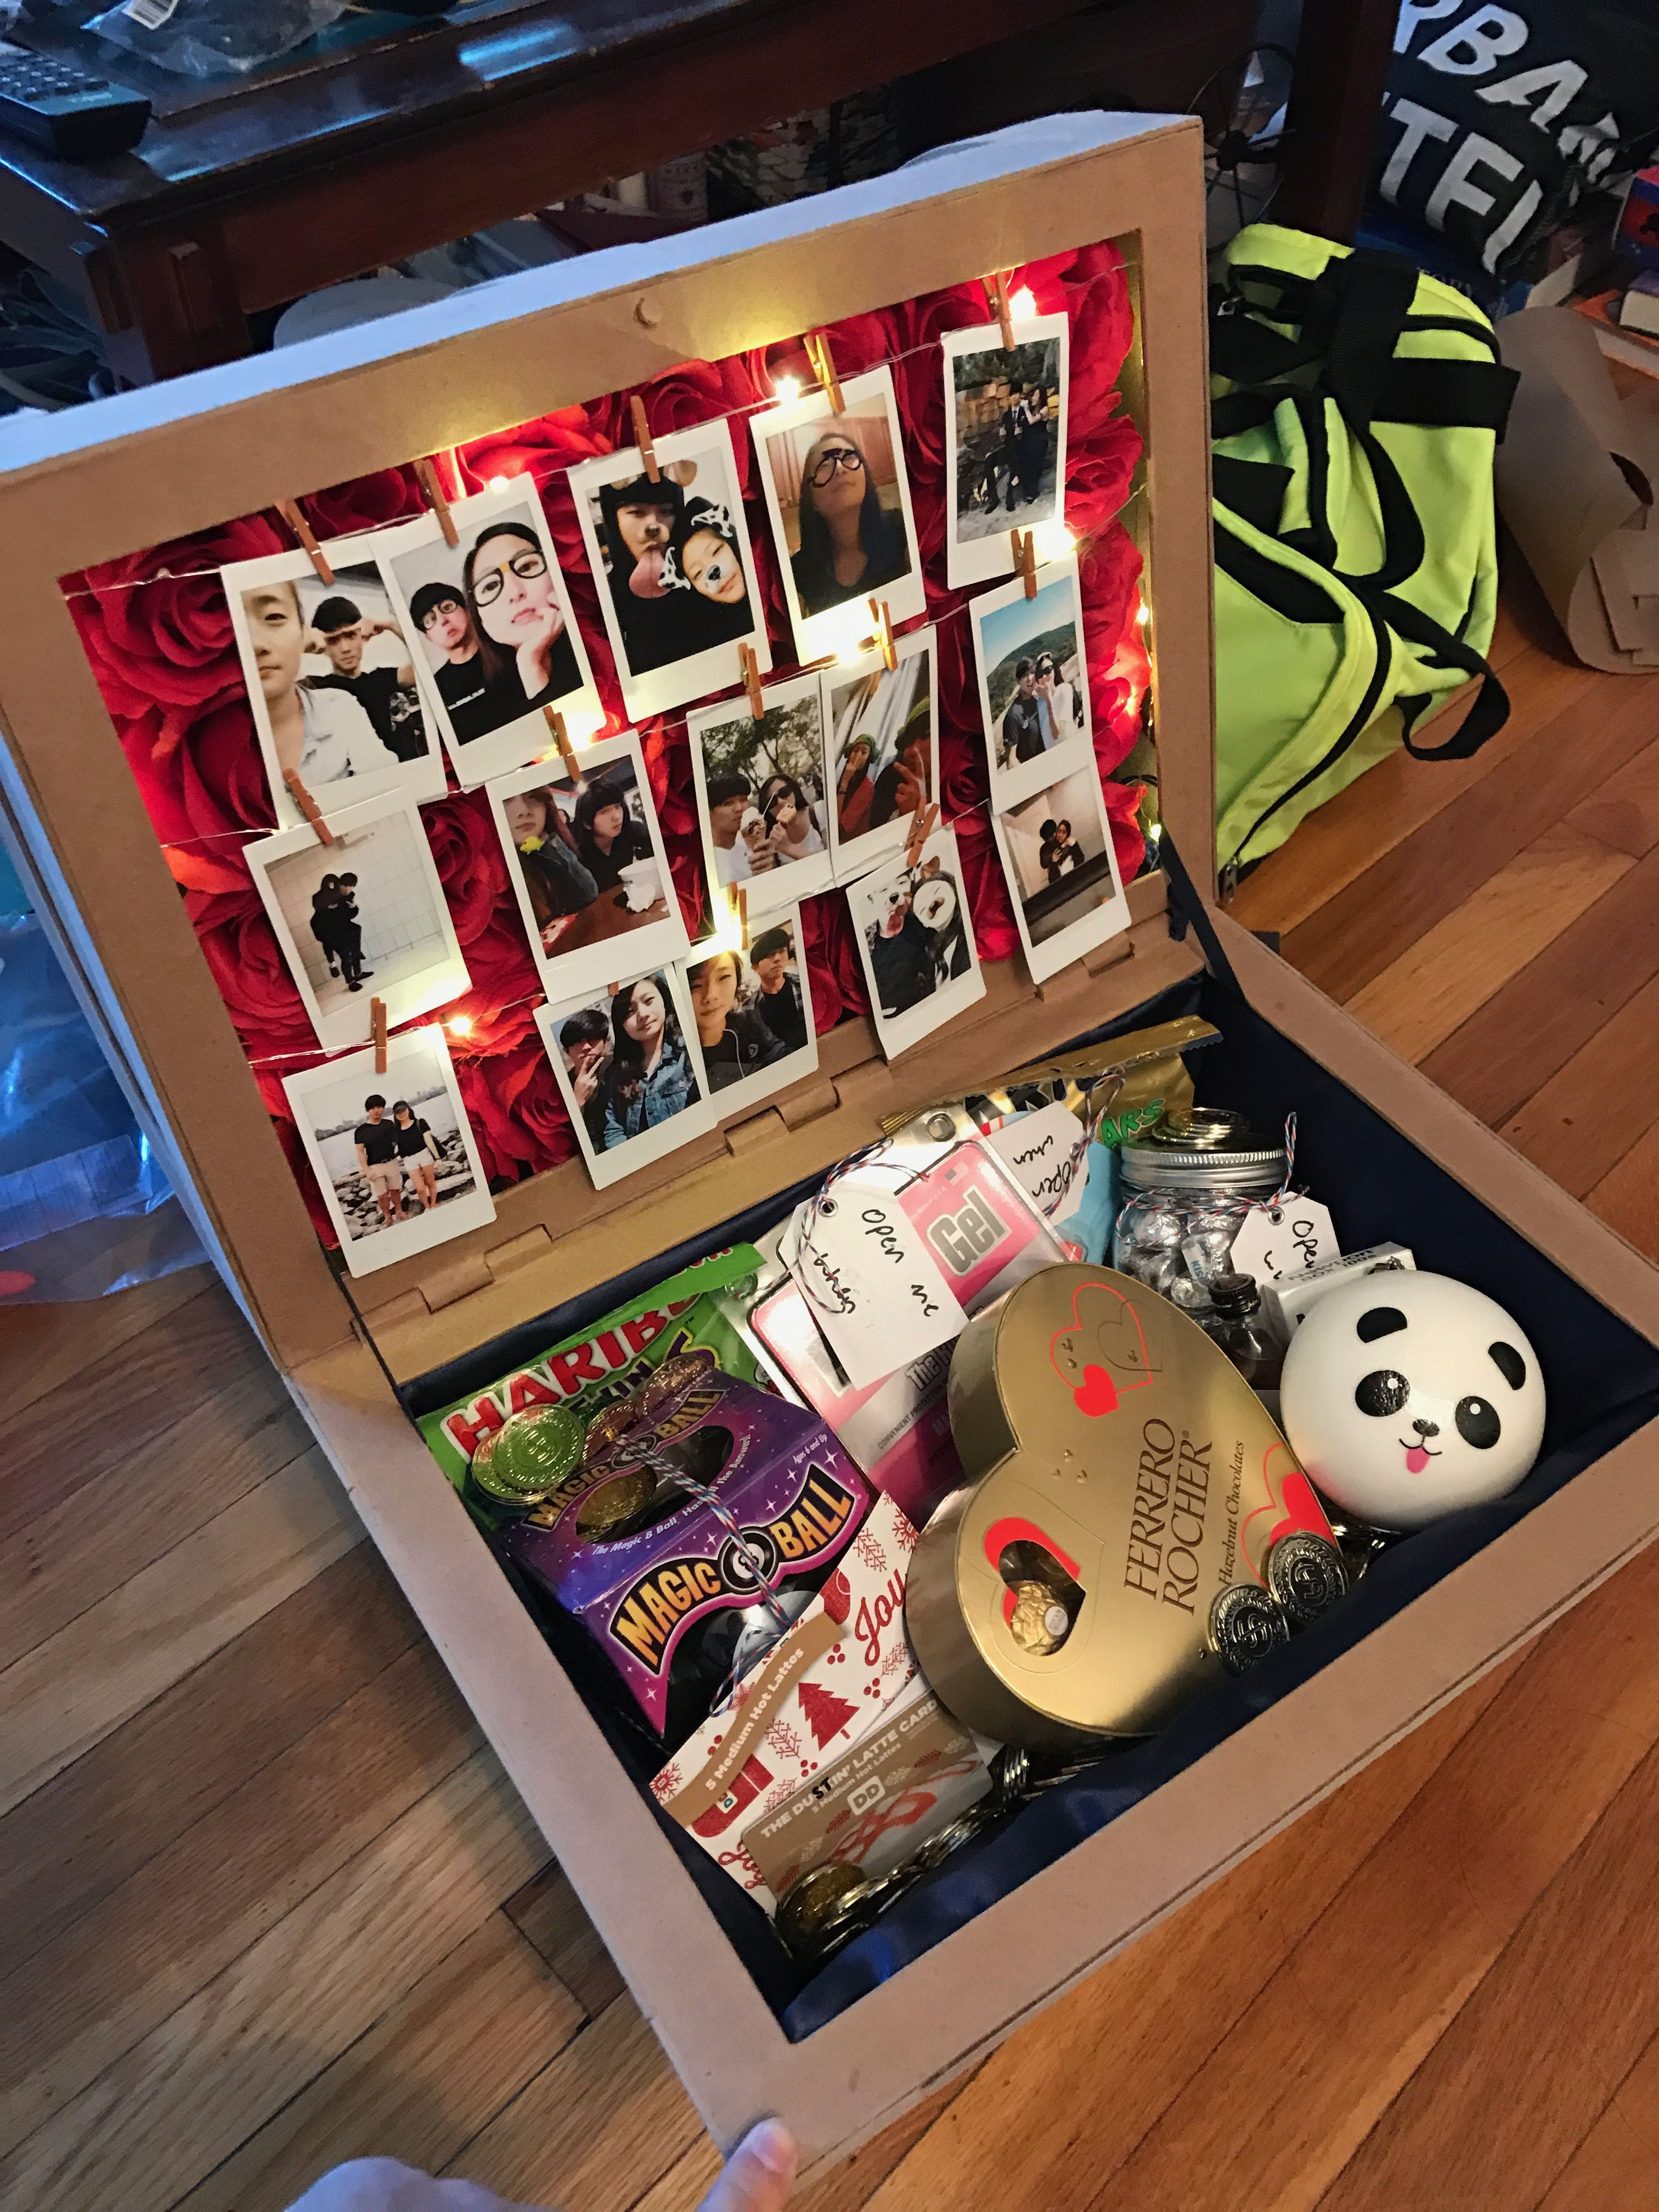 Best ideas about Cute Birthday Gift Ideas For Girlfriend . Save or Pin I made a Treasure Chest out of paper for my girlfriend Now.